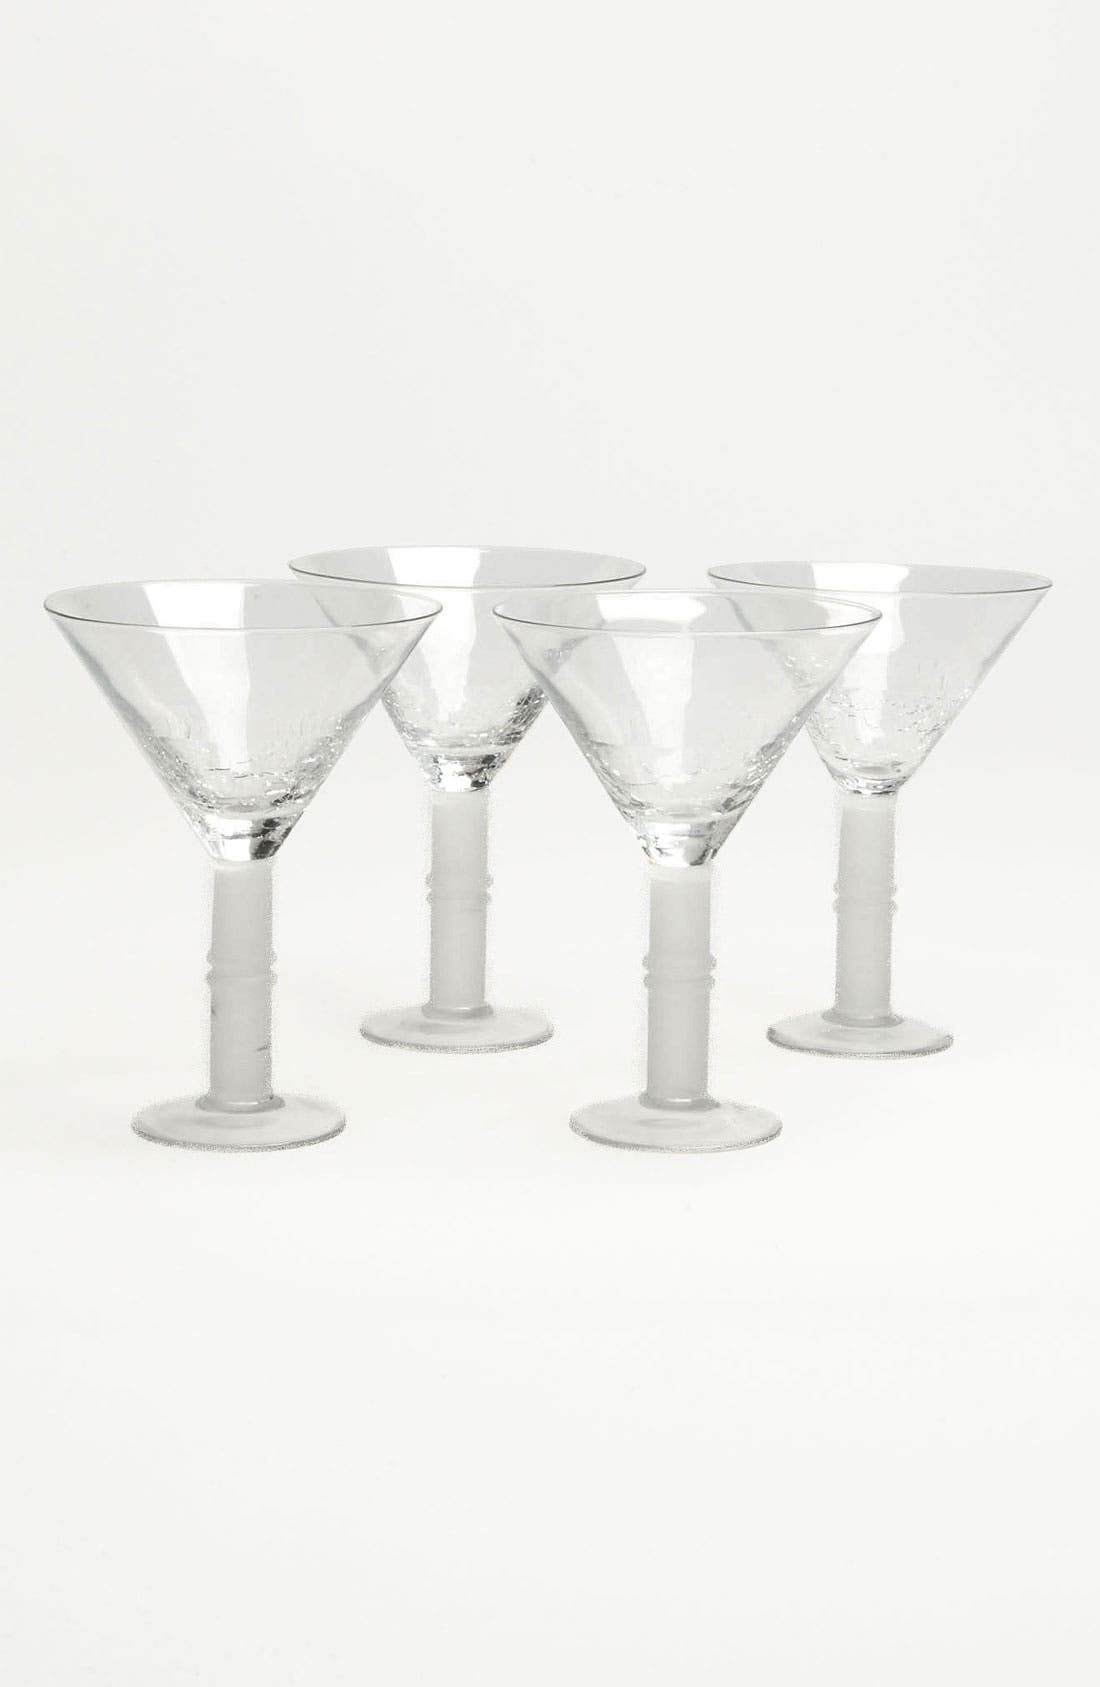 Main Image - 'Crackle' Martini Glasses (Set of 4)